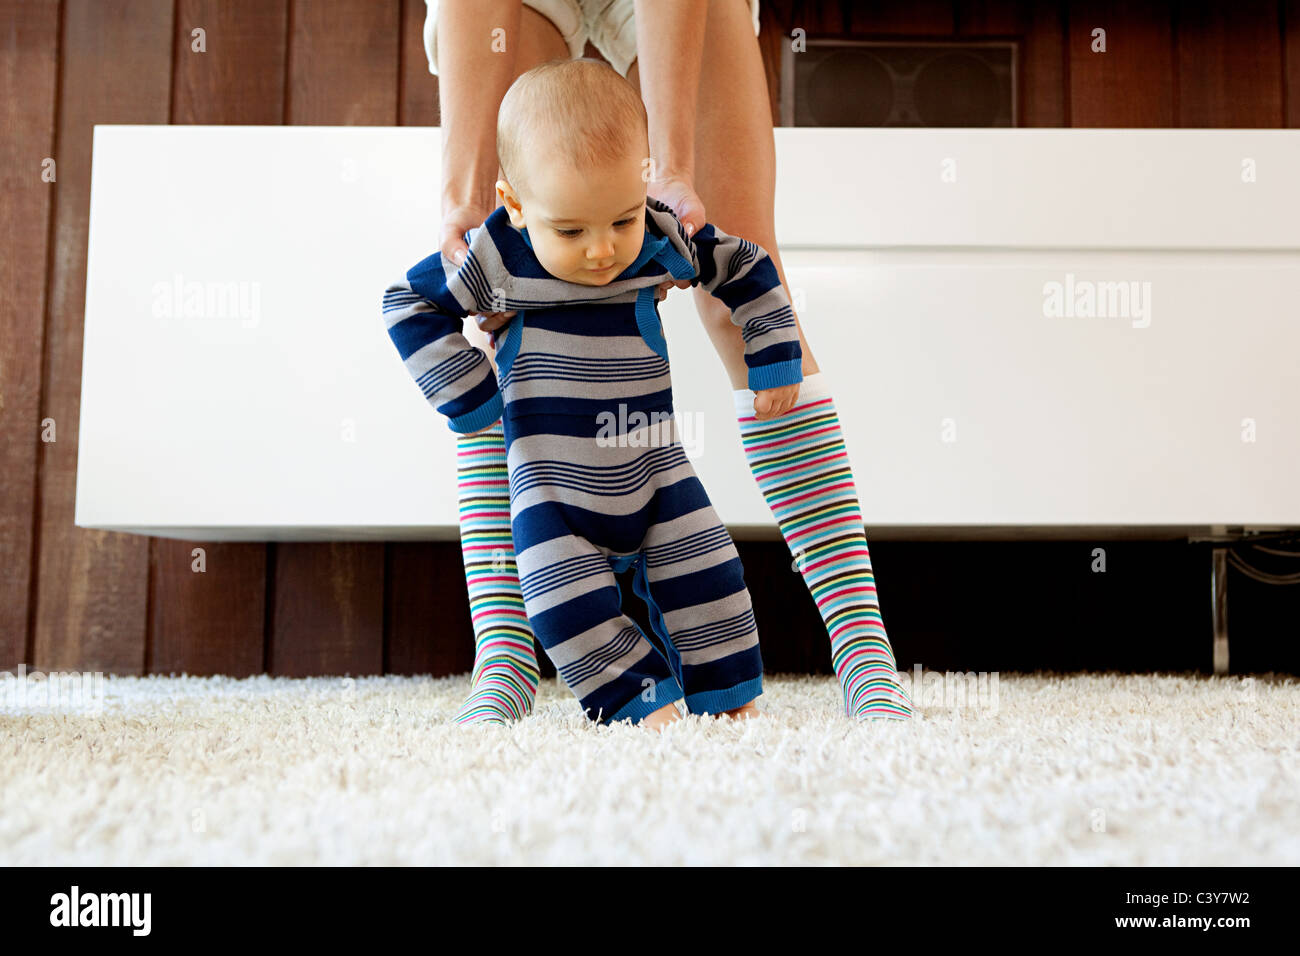 Mother helping baby son take first steps - Stock Image